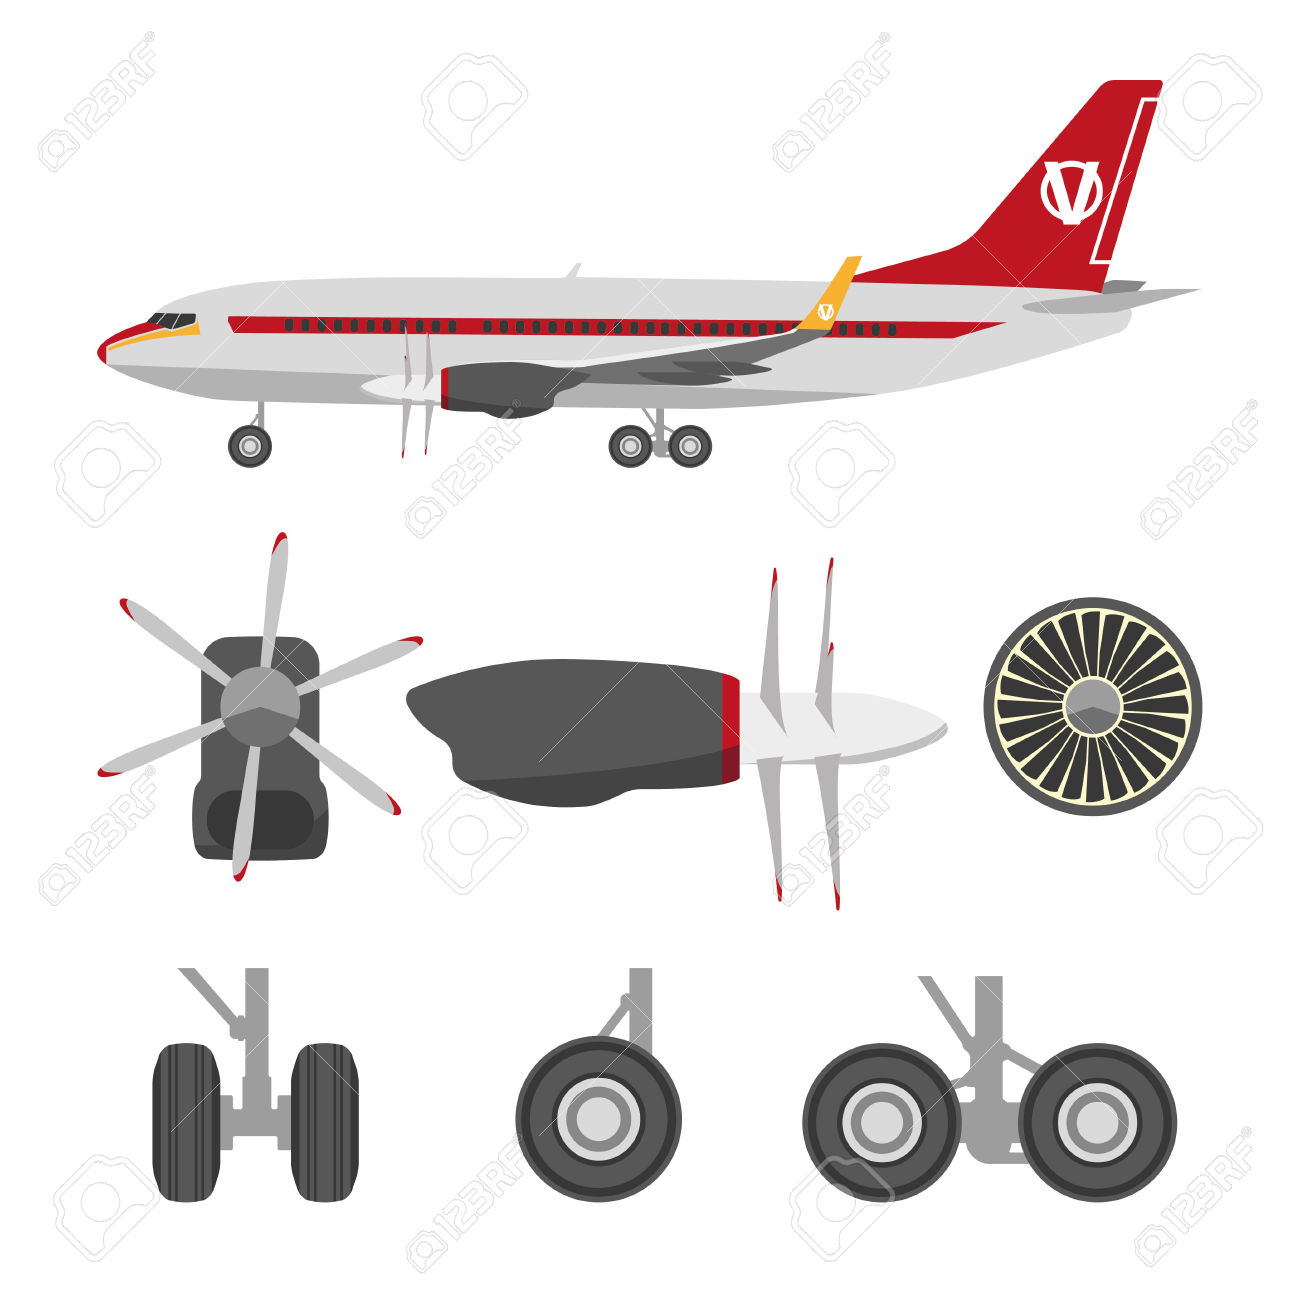 Jets Constructor. Flat Icons Aircraft Parts. Collection Of Symbols.